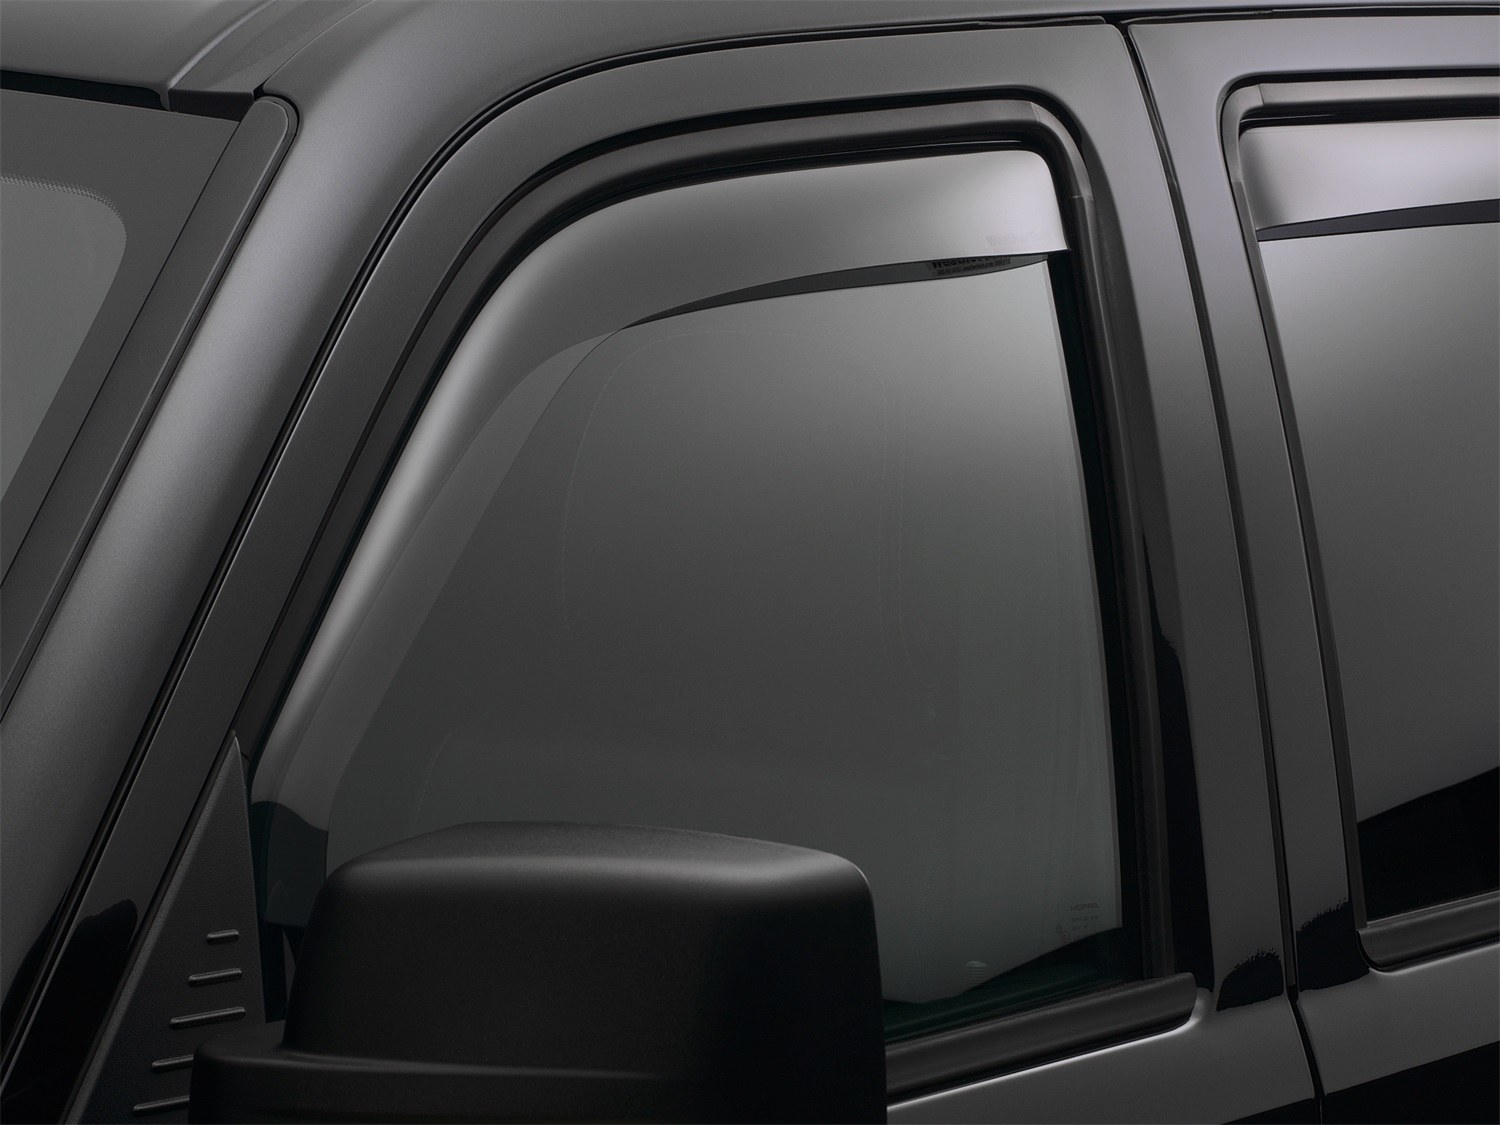 WeatherTech Front and Rear Side Window Deflector for Select Volkswagen Tiguan Models